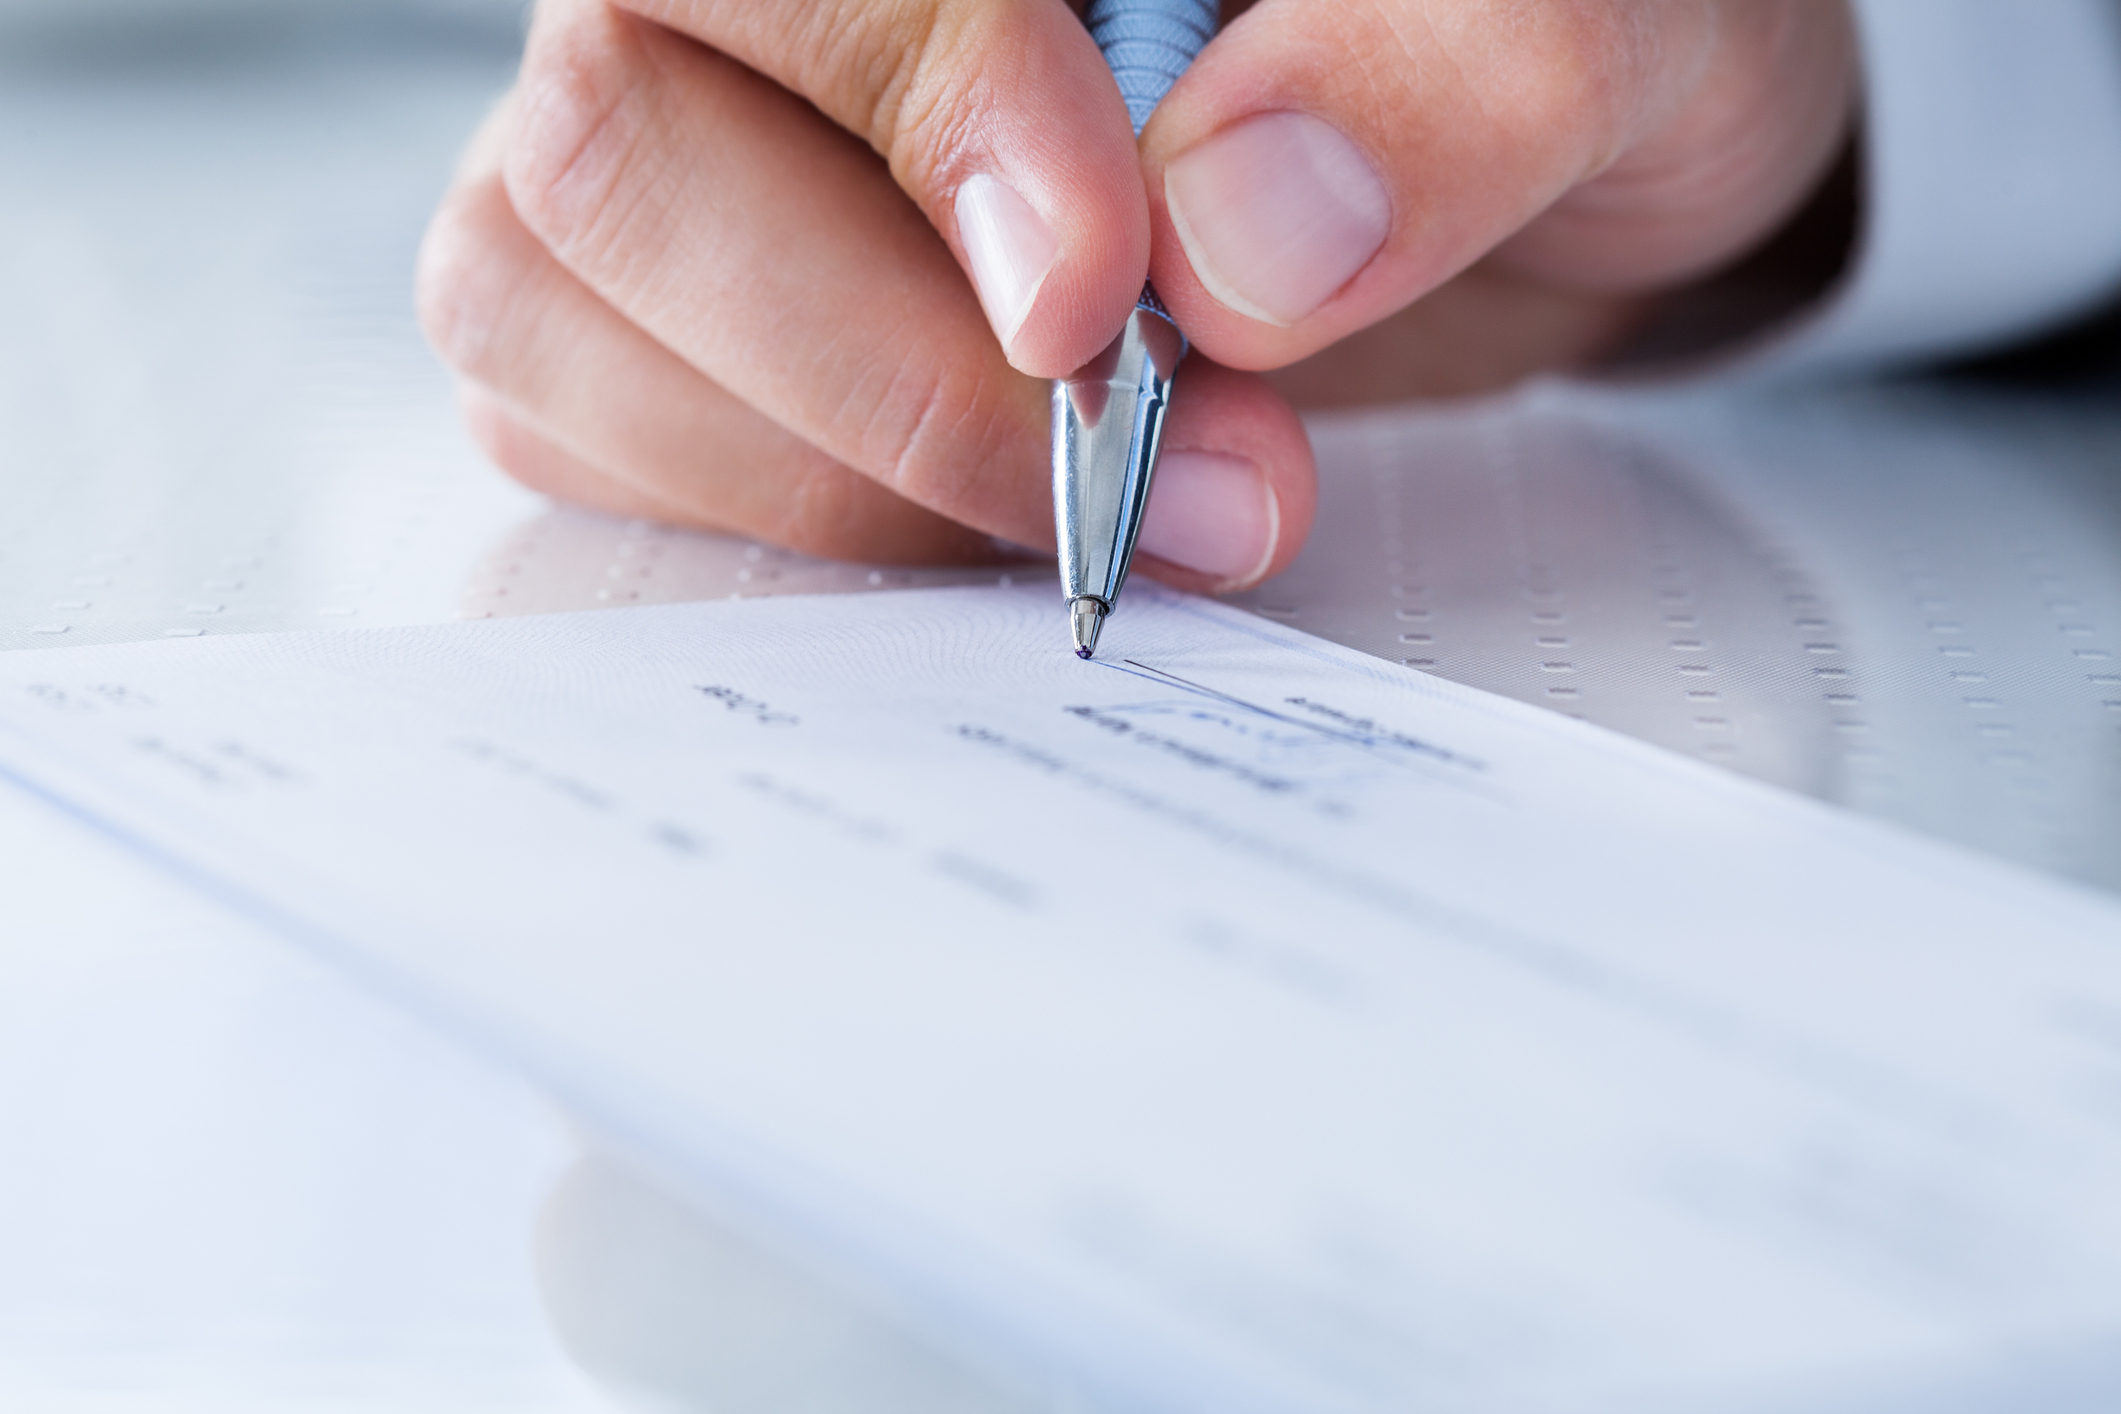 an image of a person's hand writing on a check using a shiny pen